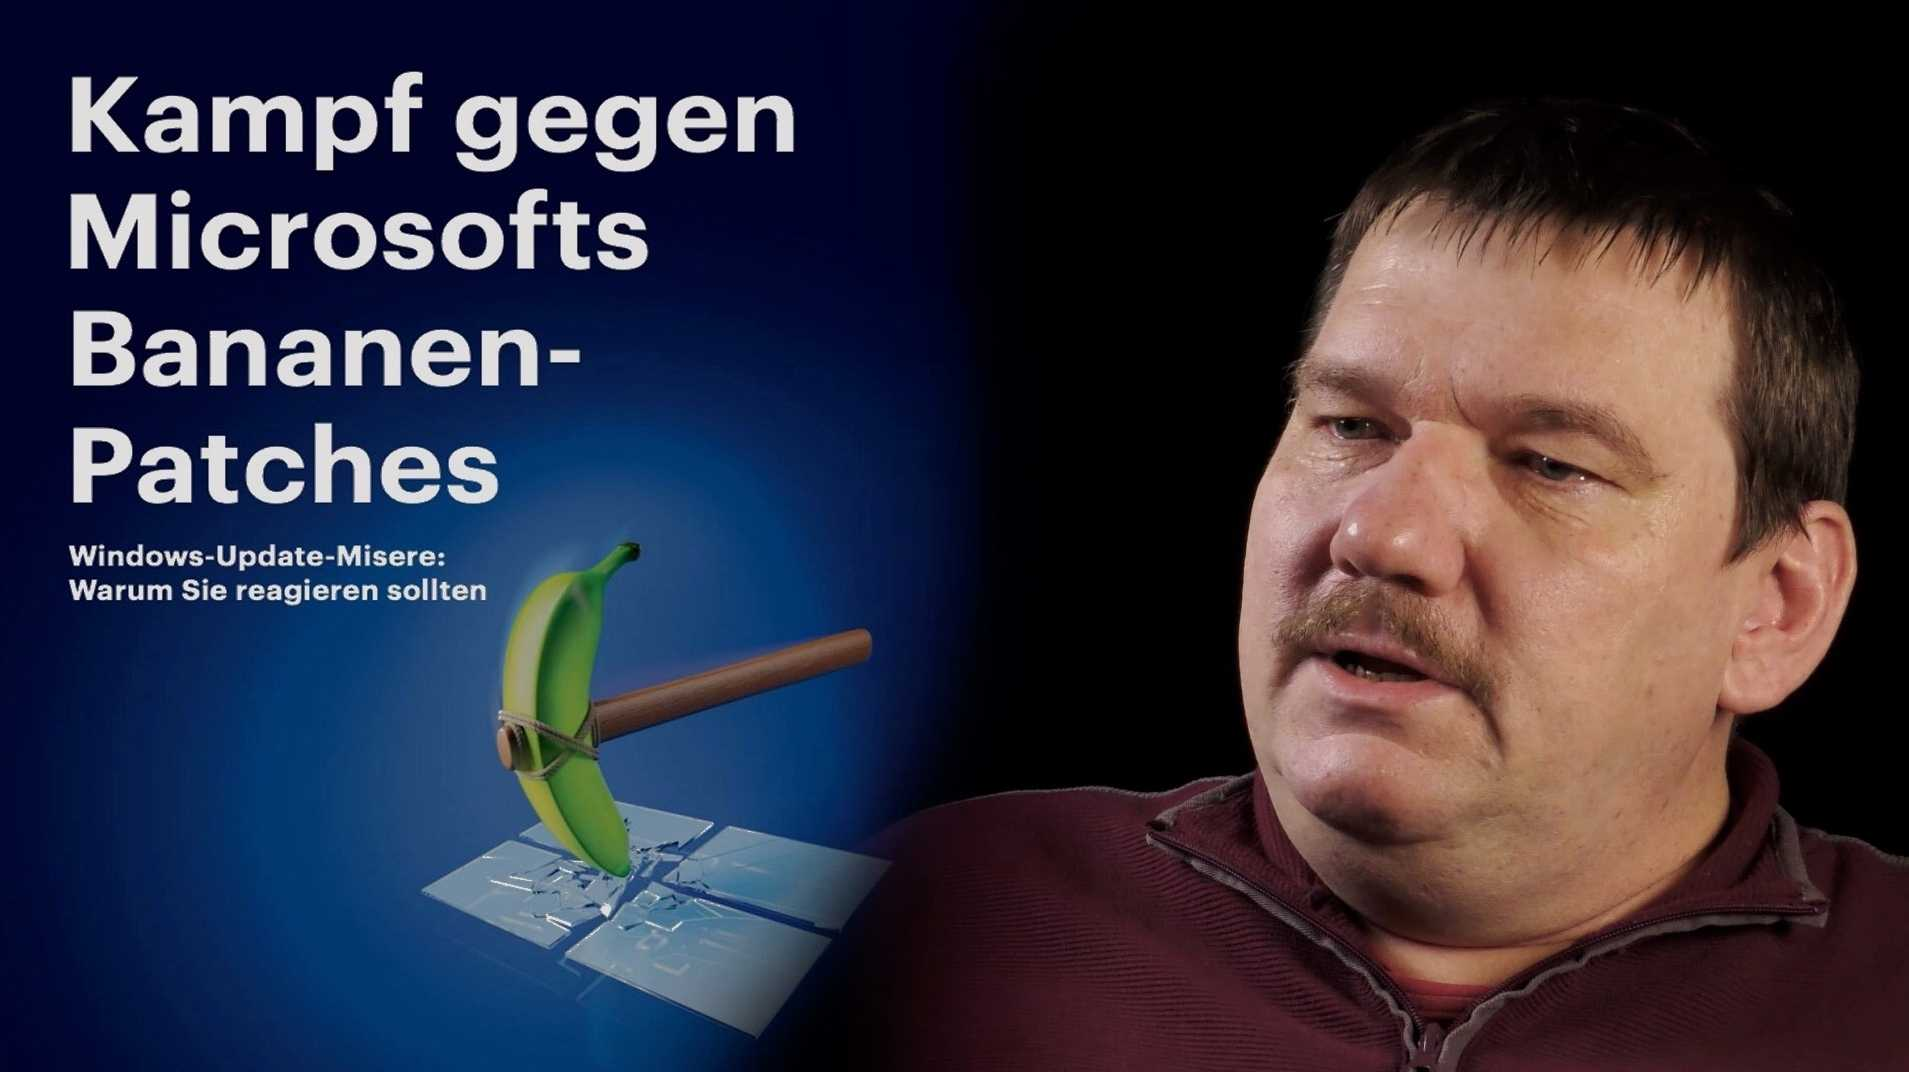 nachgehakt: Windows-Update-Misere